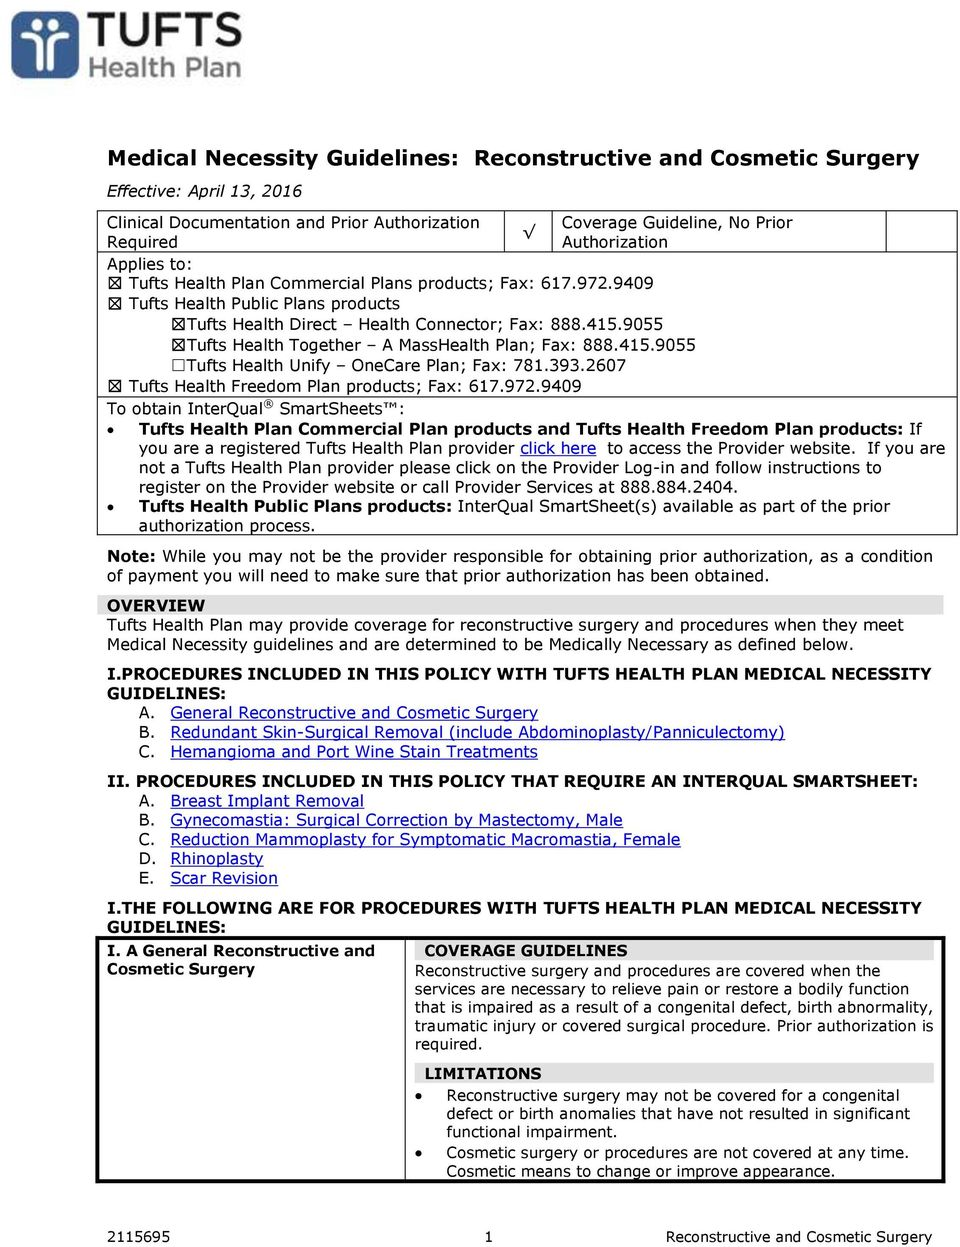 Medical Necessity Guidelines Reconstructive And Cosmetic Surgery Pdf